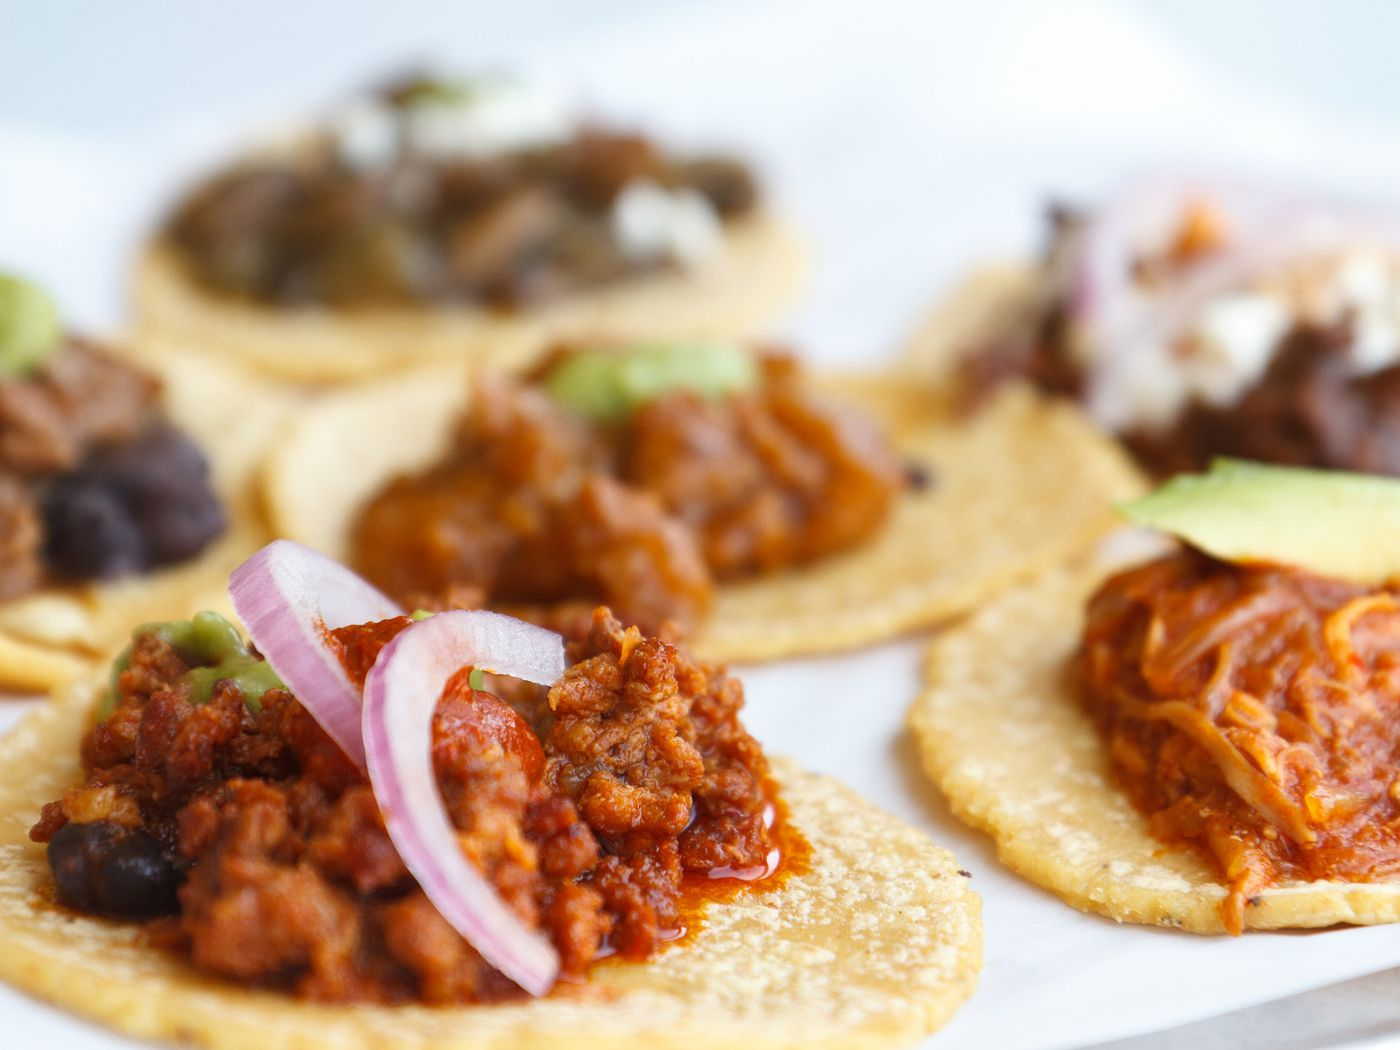 guisados wants to dominate downtown burbank next - eater la